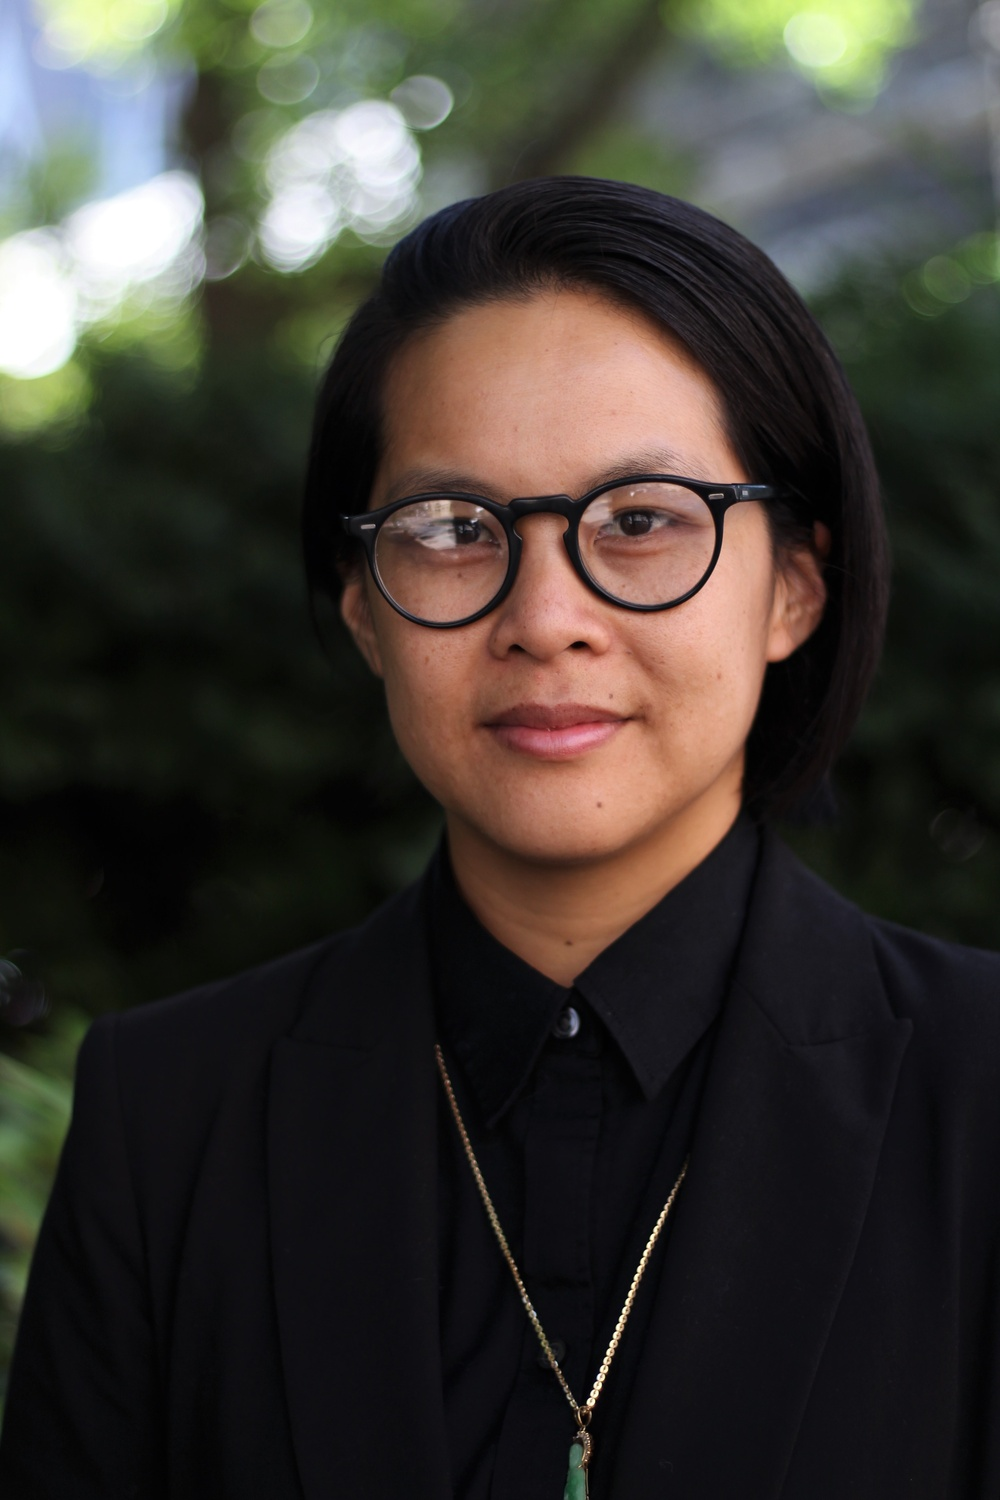 Mather House tutor Anh Tran speaks with FM about her years as a monastic nun.